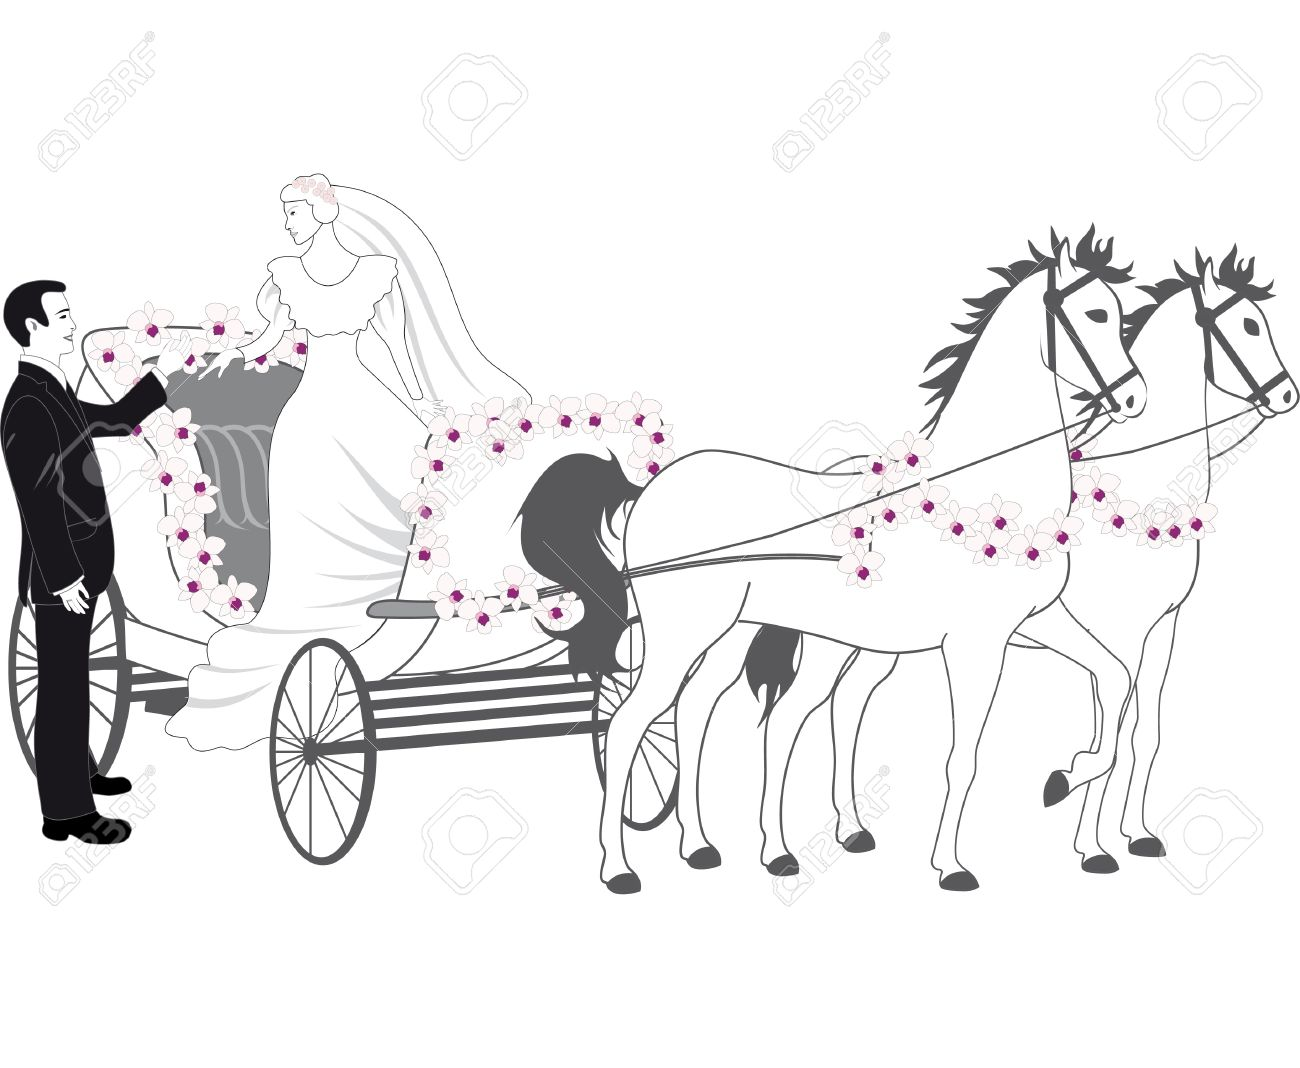 Chariot With Newlyweds Royalty Free Cliparts, Vectors, And Stock.